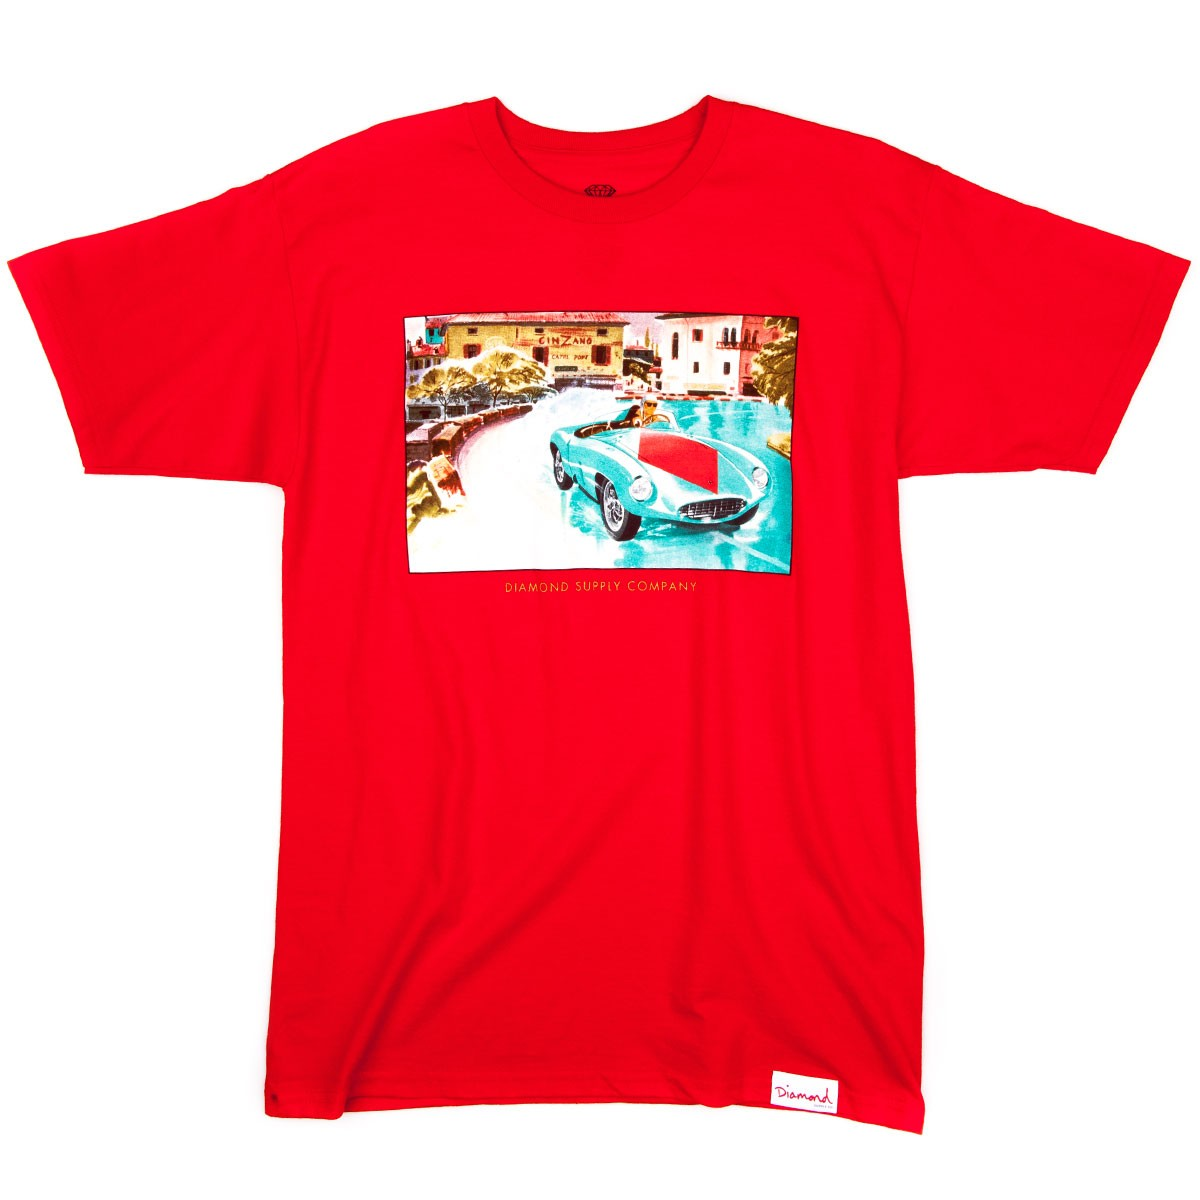 Diamond supply co street race t shirt red for The red t shirt company